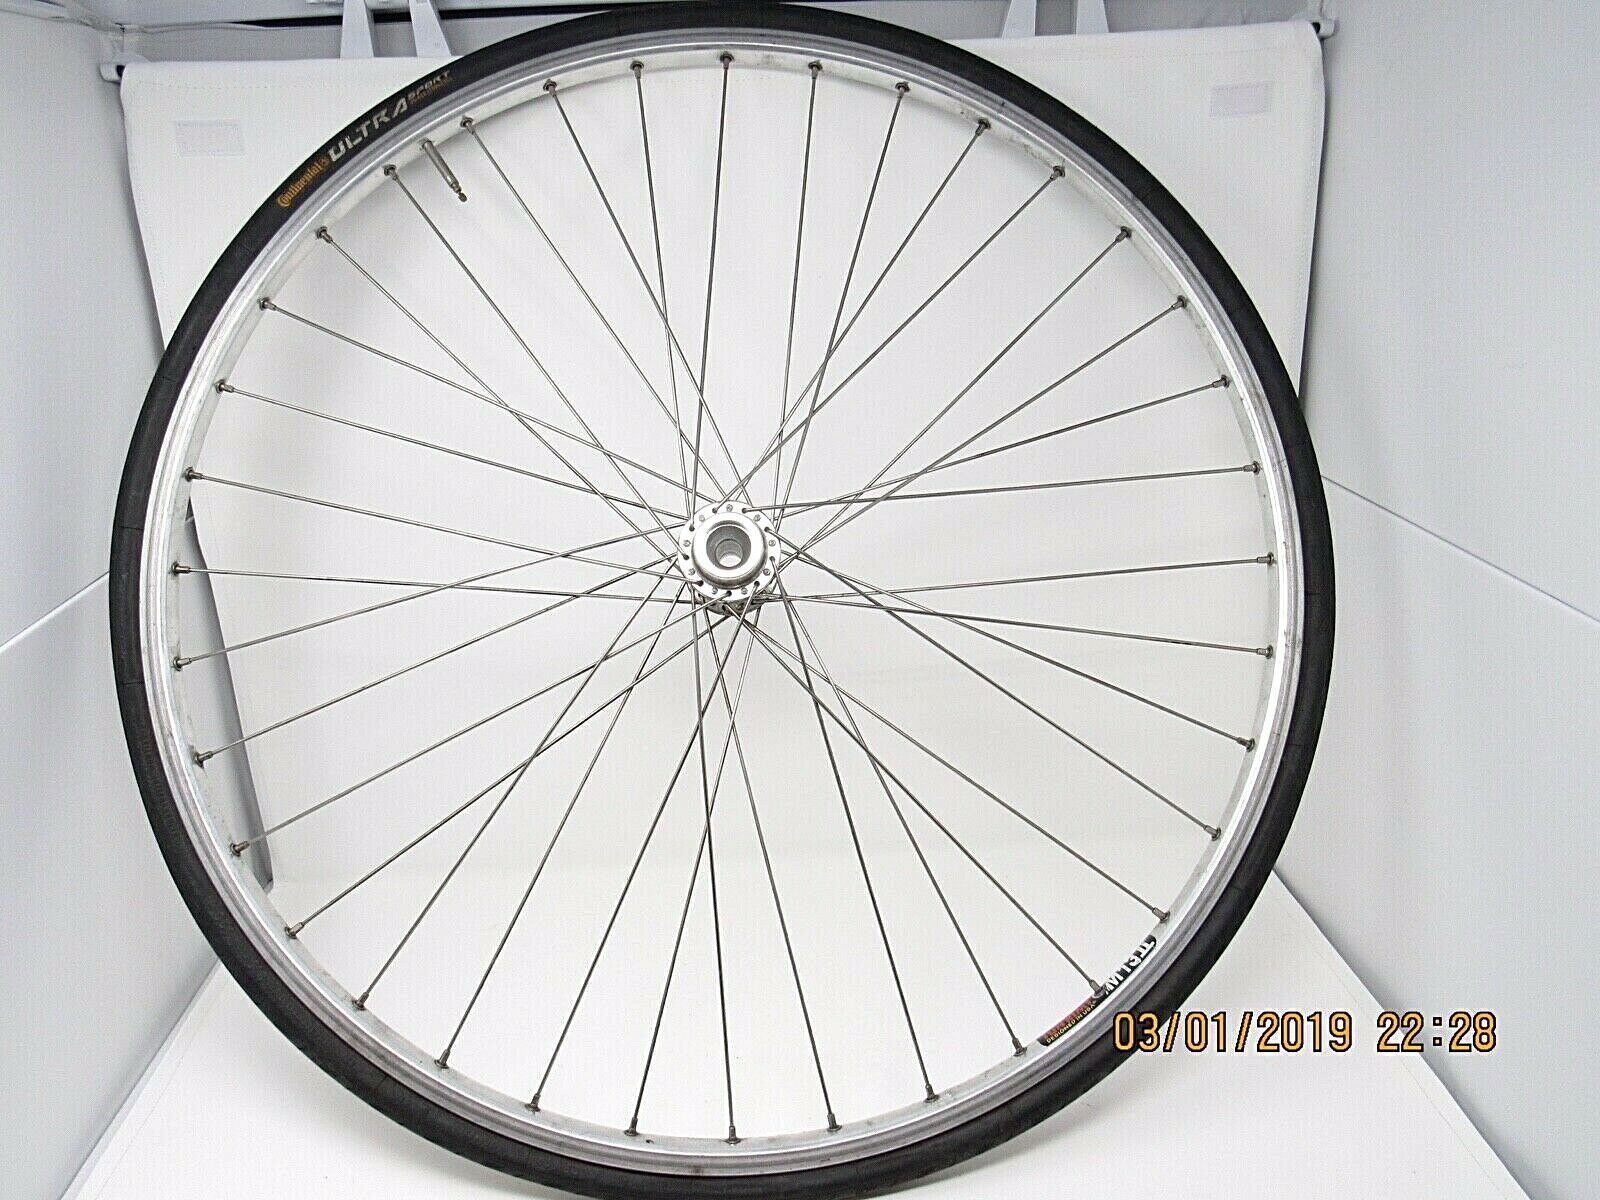 Vintage Peugeot Reynolds 501 Rim M13II 622 x 18mm Bike Wheel Rim Tire 26  Rear